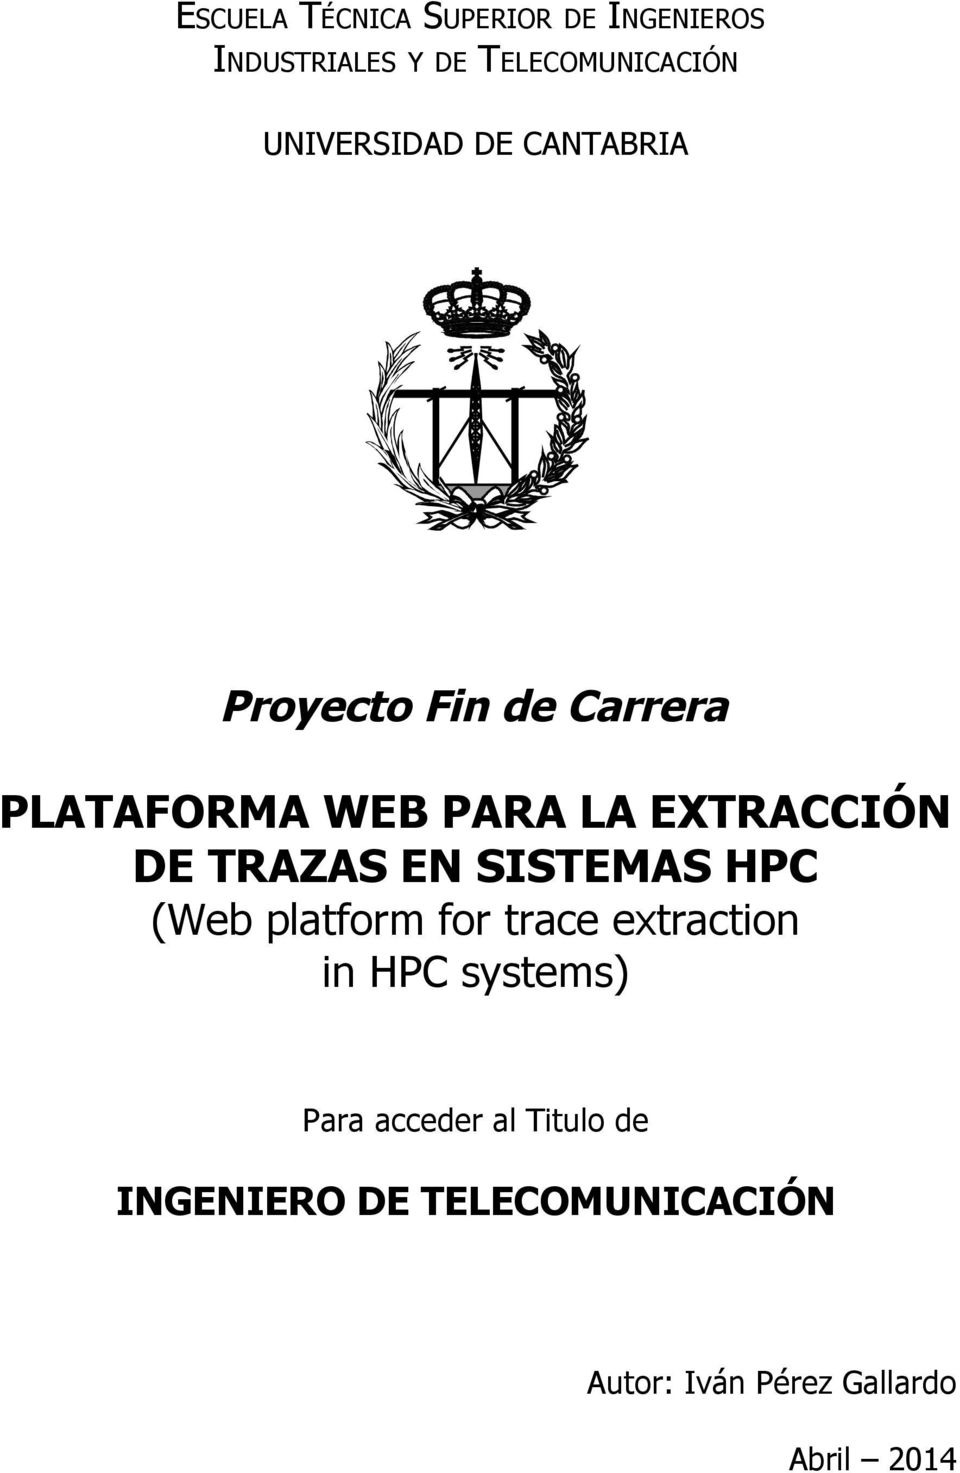 EXTRACCIÓN DE TRAZAS EN SISTEMAS HPC (Web platform for trace extraction in HPC